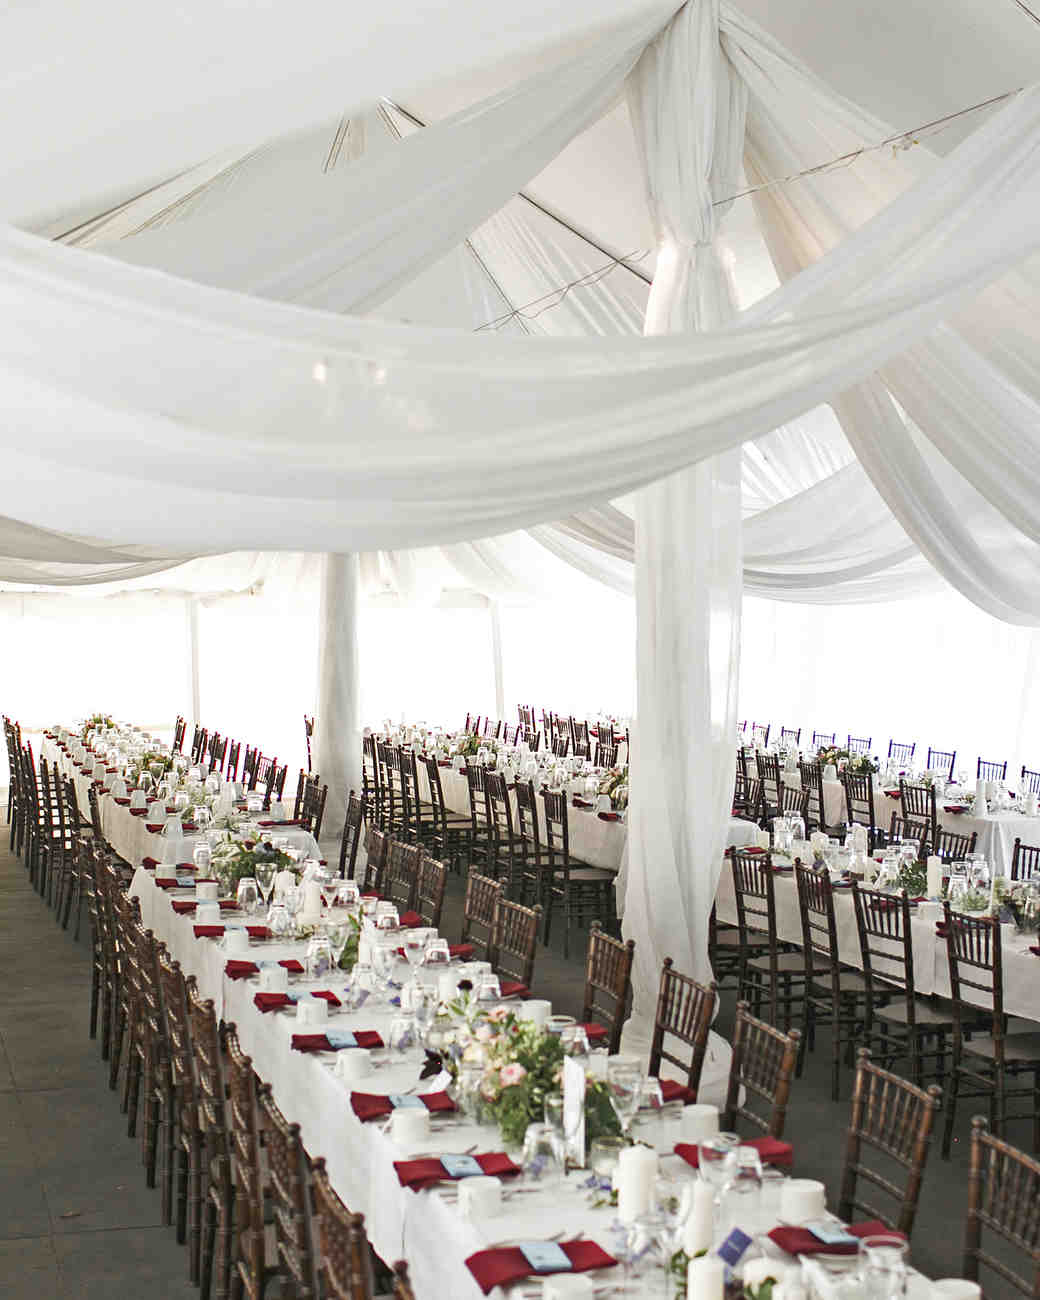 Long White Reception Tables with Red Napkins